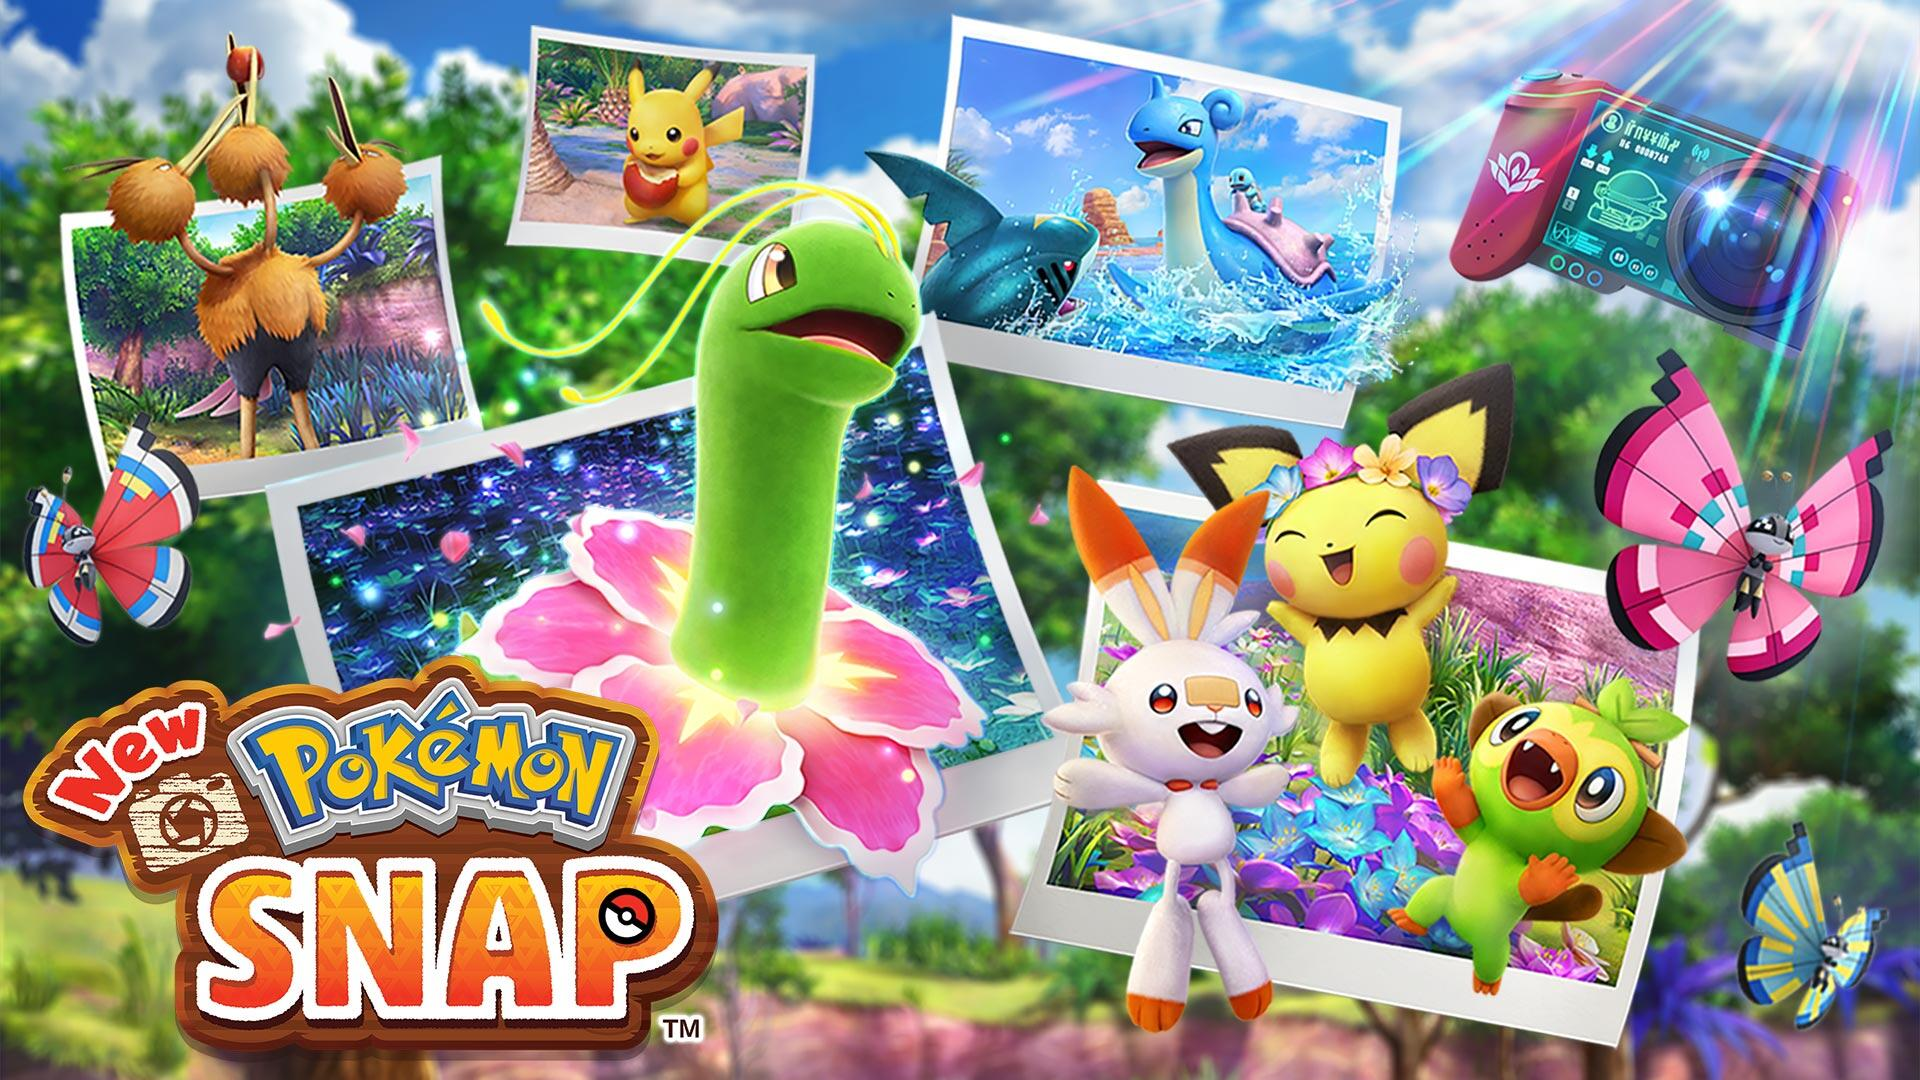 Pokemon Snap hasn't changed in 20 years. That's a great thing     - CNET